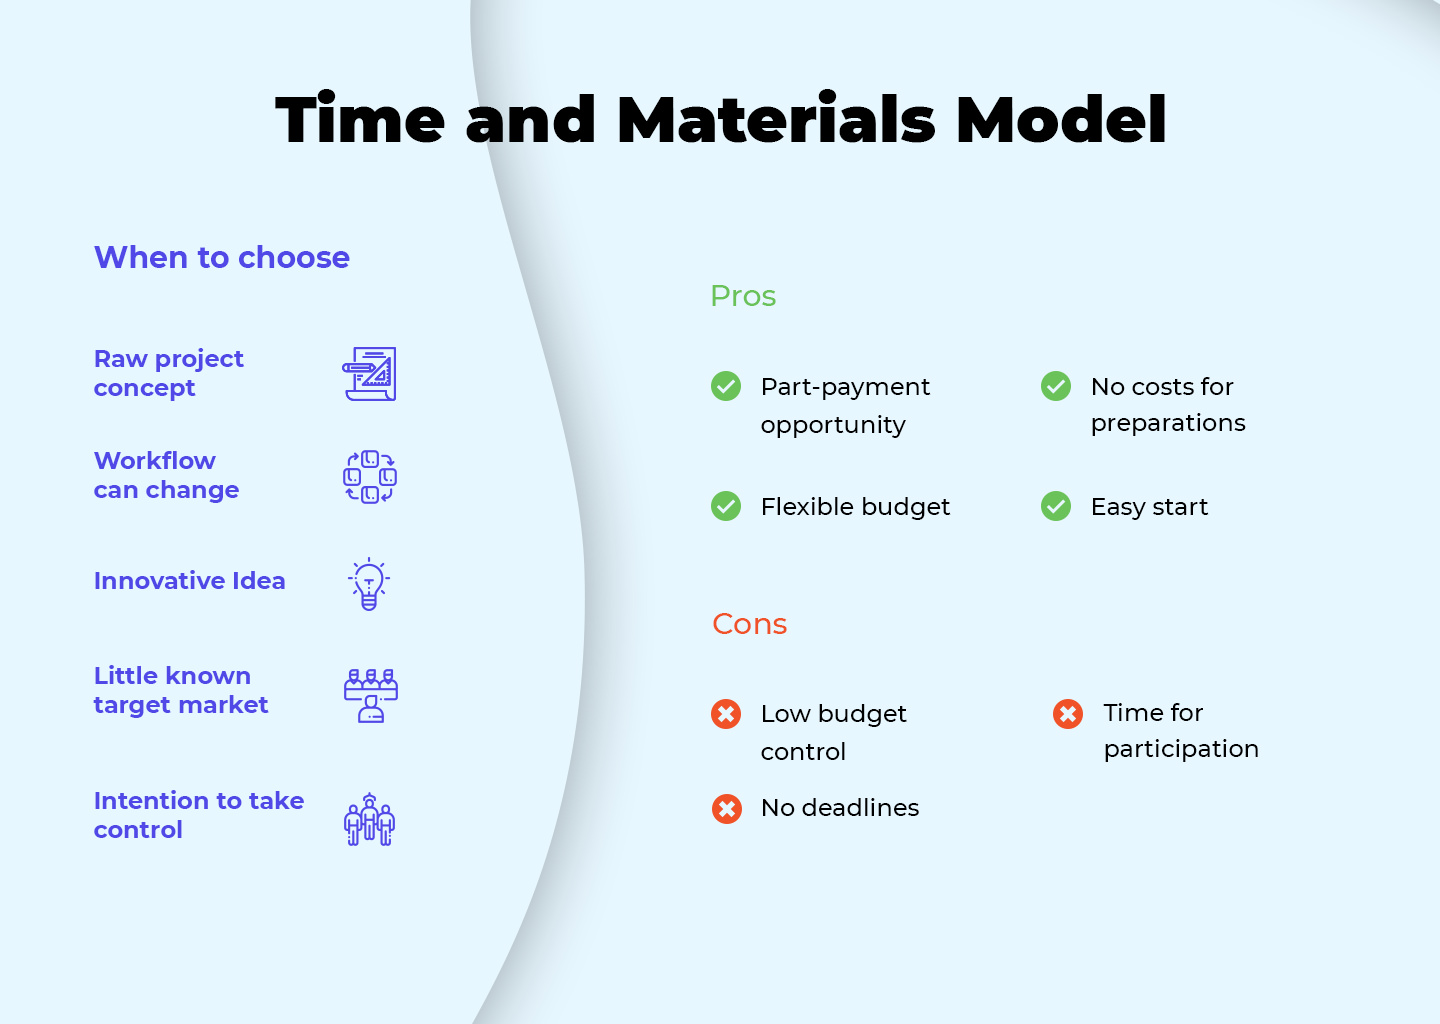 Time and materials model